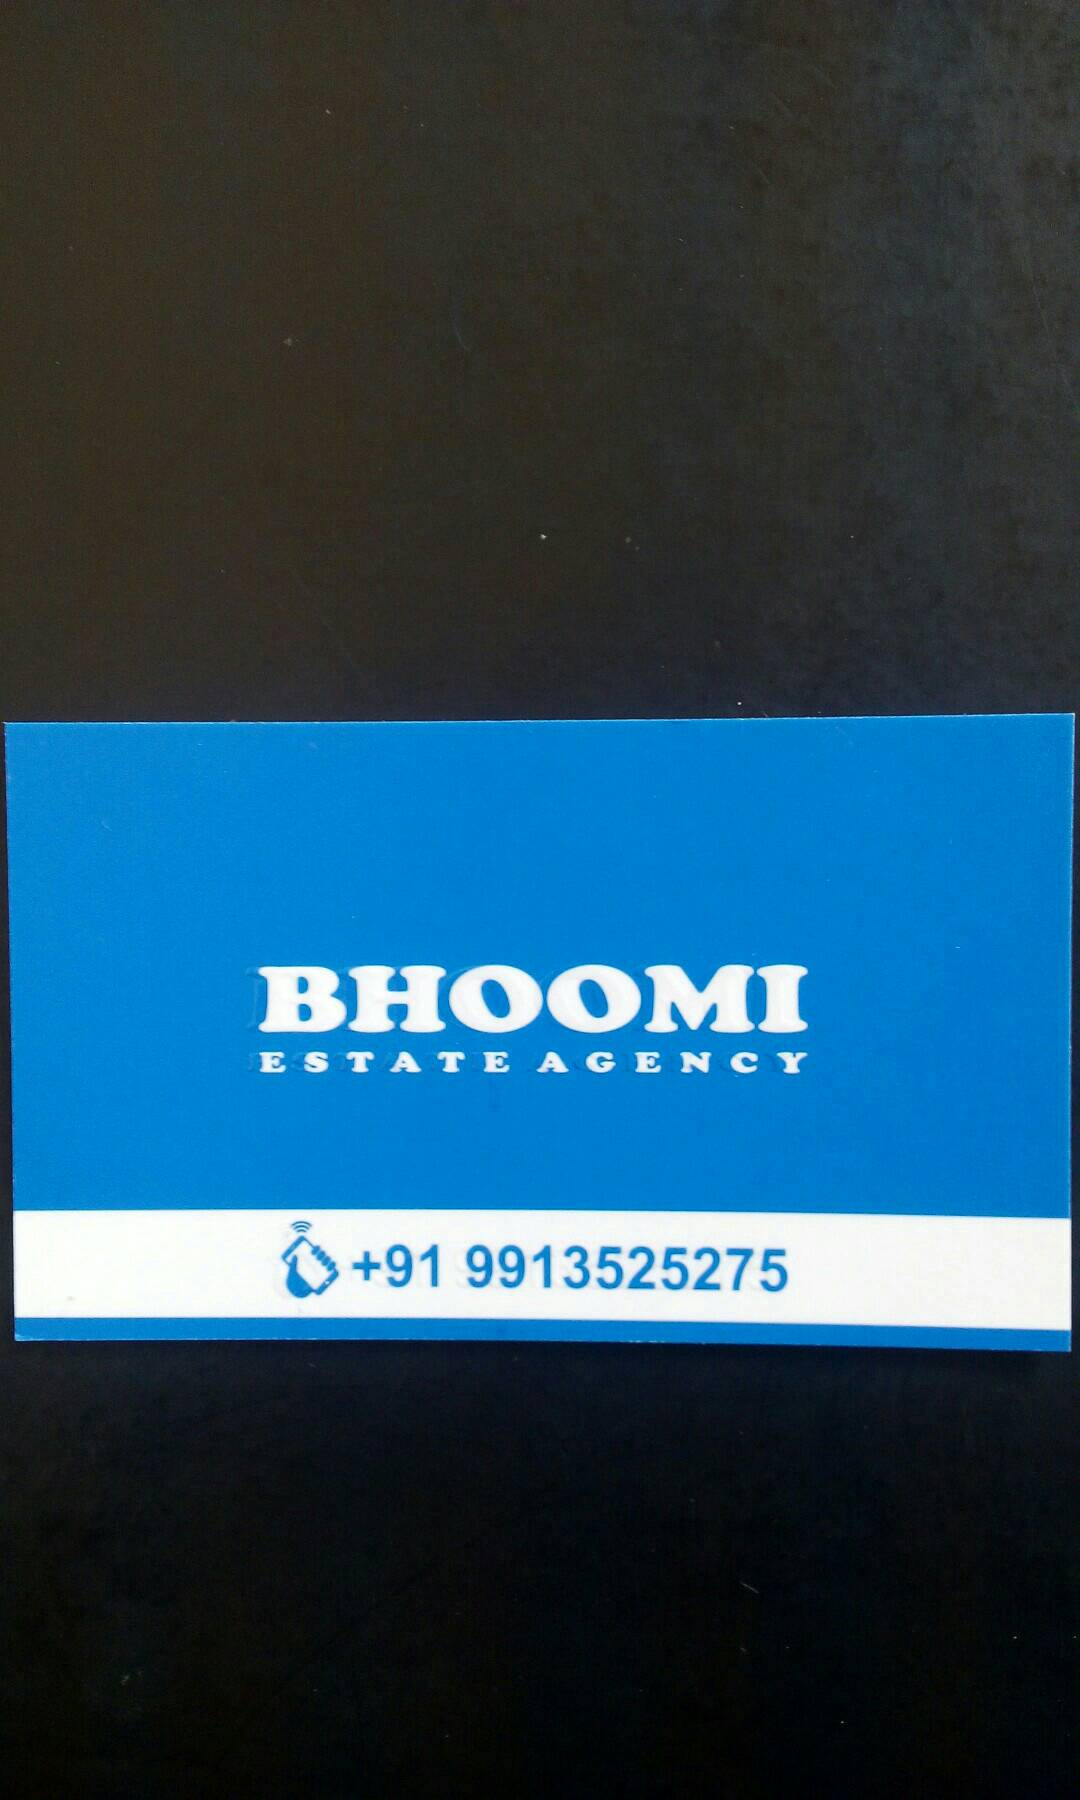 Bhoomi Estate Agency - logo